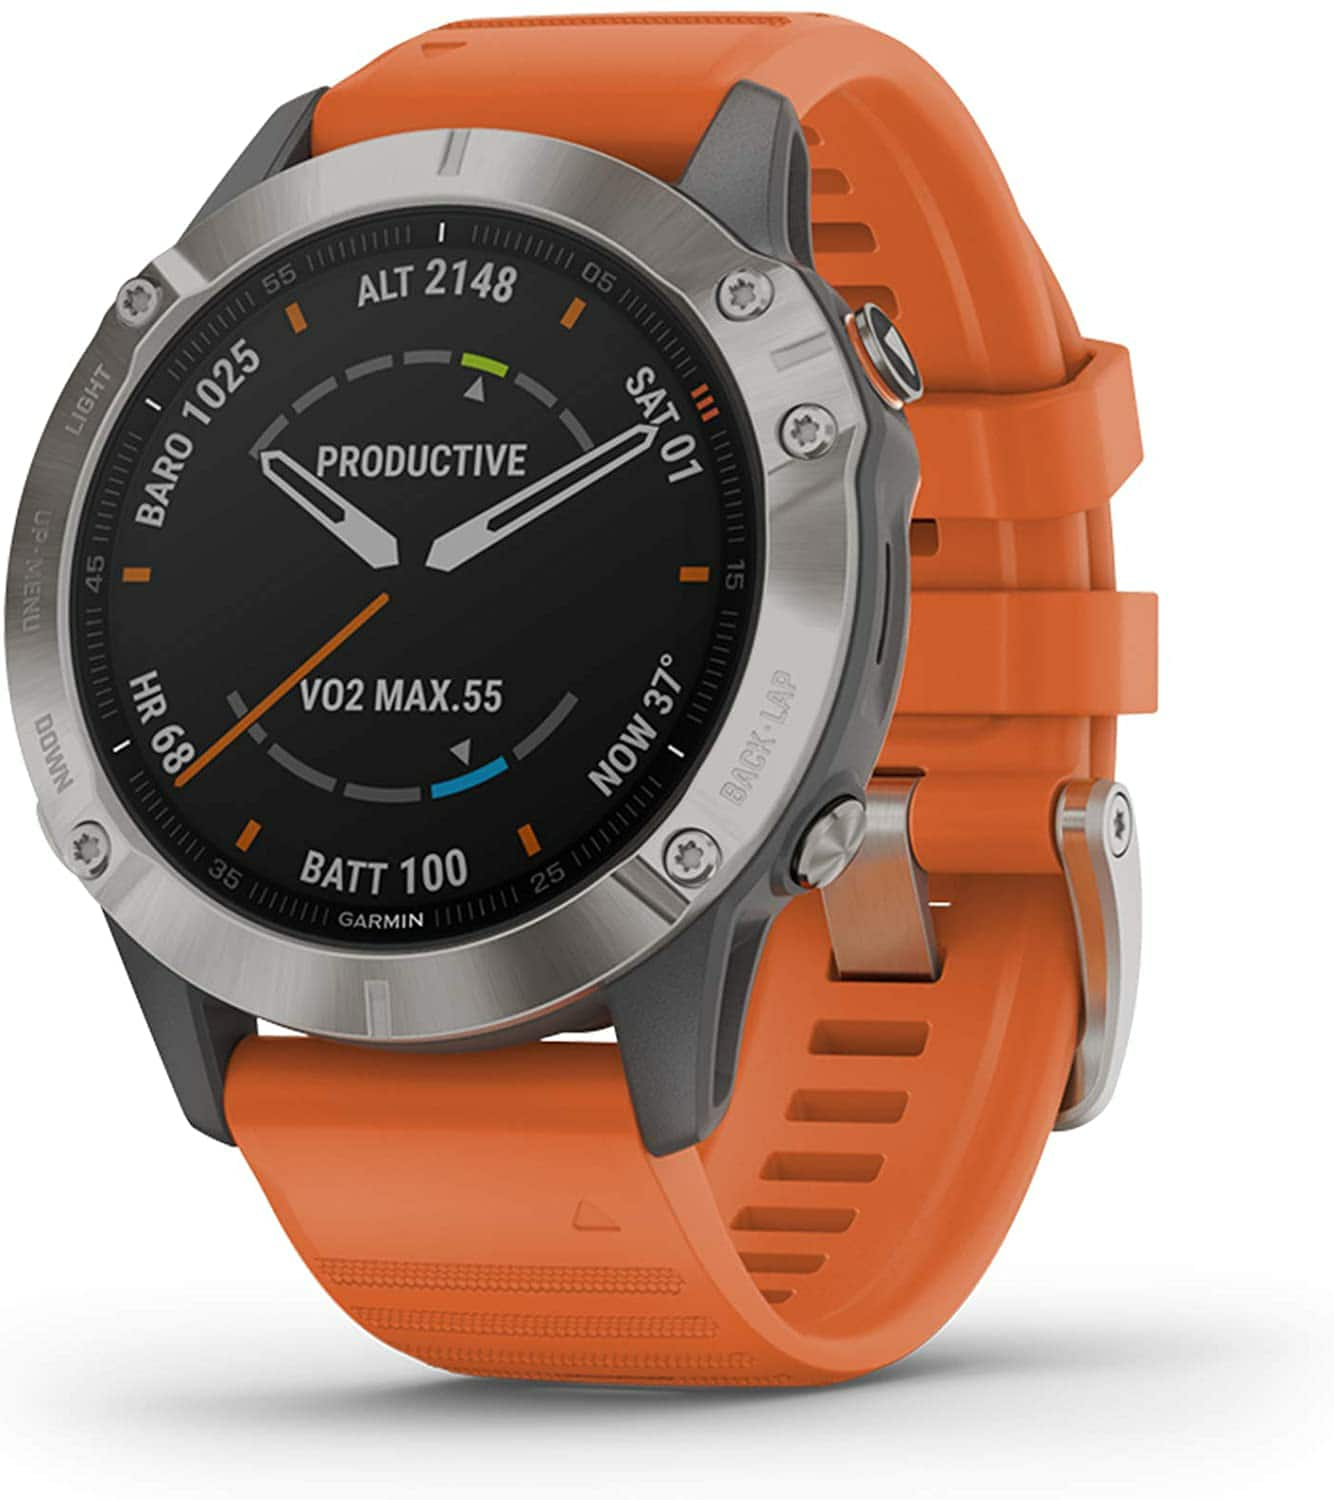 Amazon.com: Garmin Fenix 6 Sapphire, Premium Multisport GPS Watch, features Mapping, Music, Grade-Adjusted Pace Guidance and Pulse Ox Sensors, Titanium with Orange Band